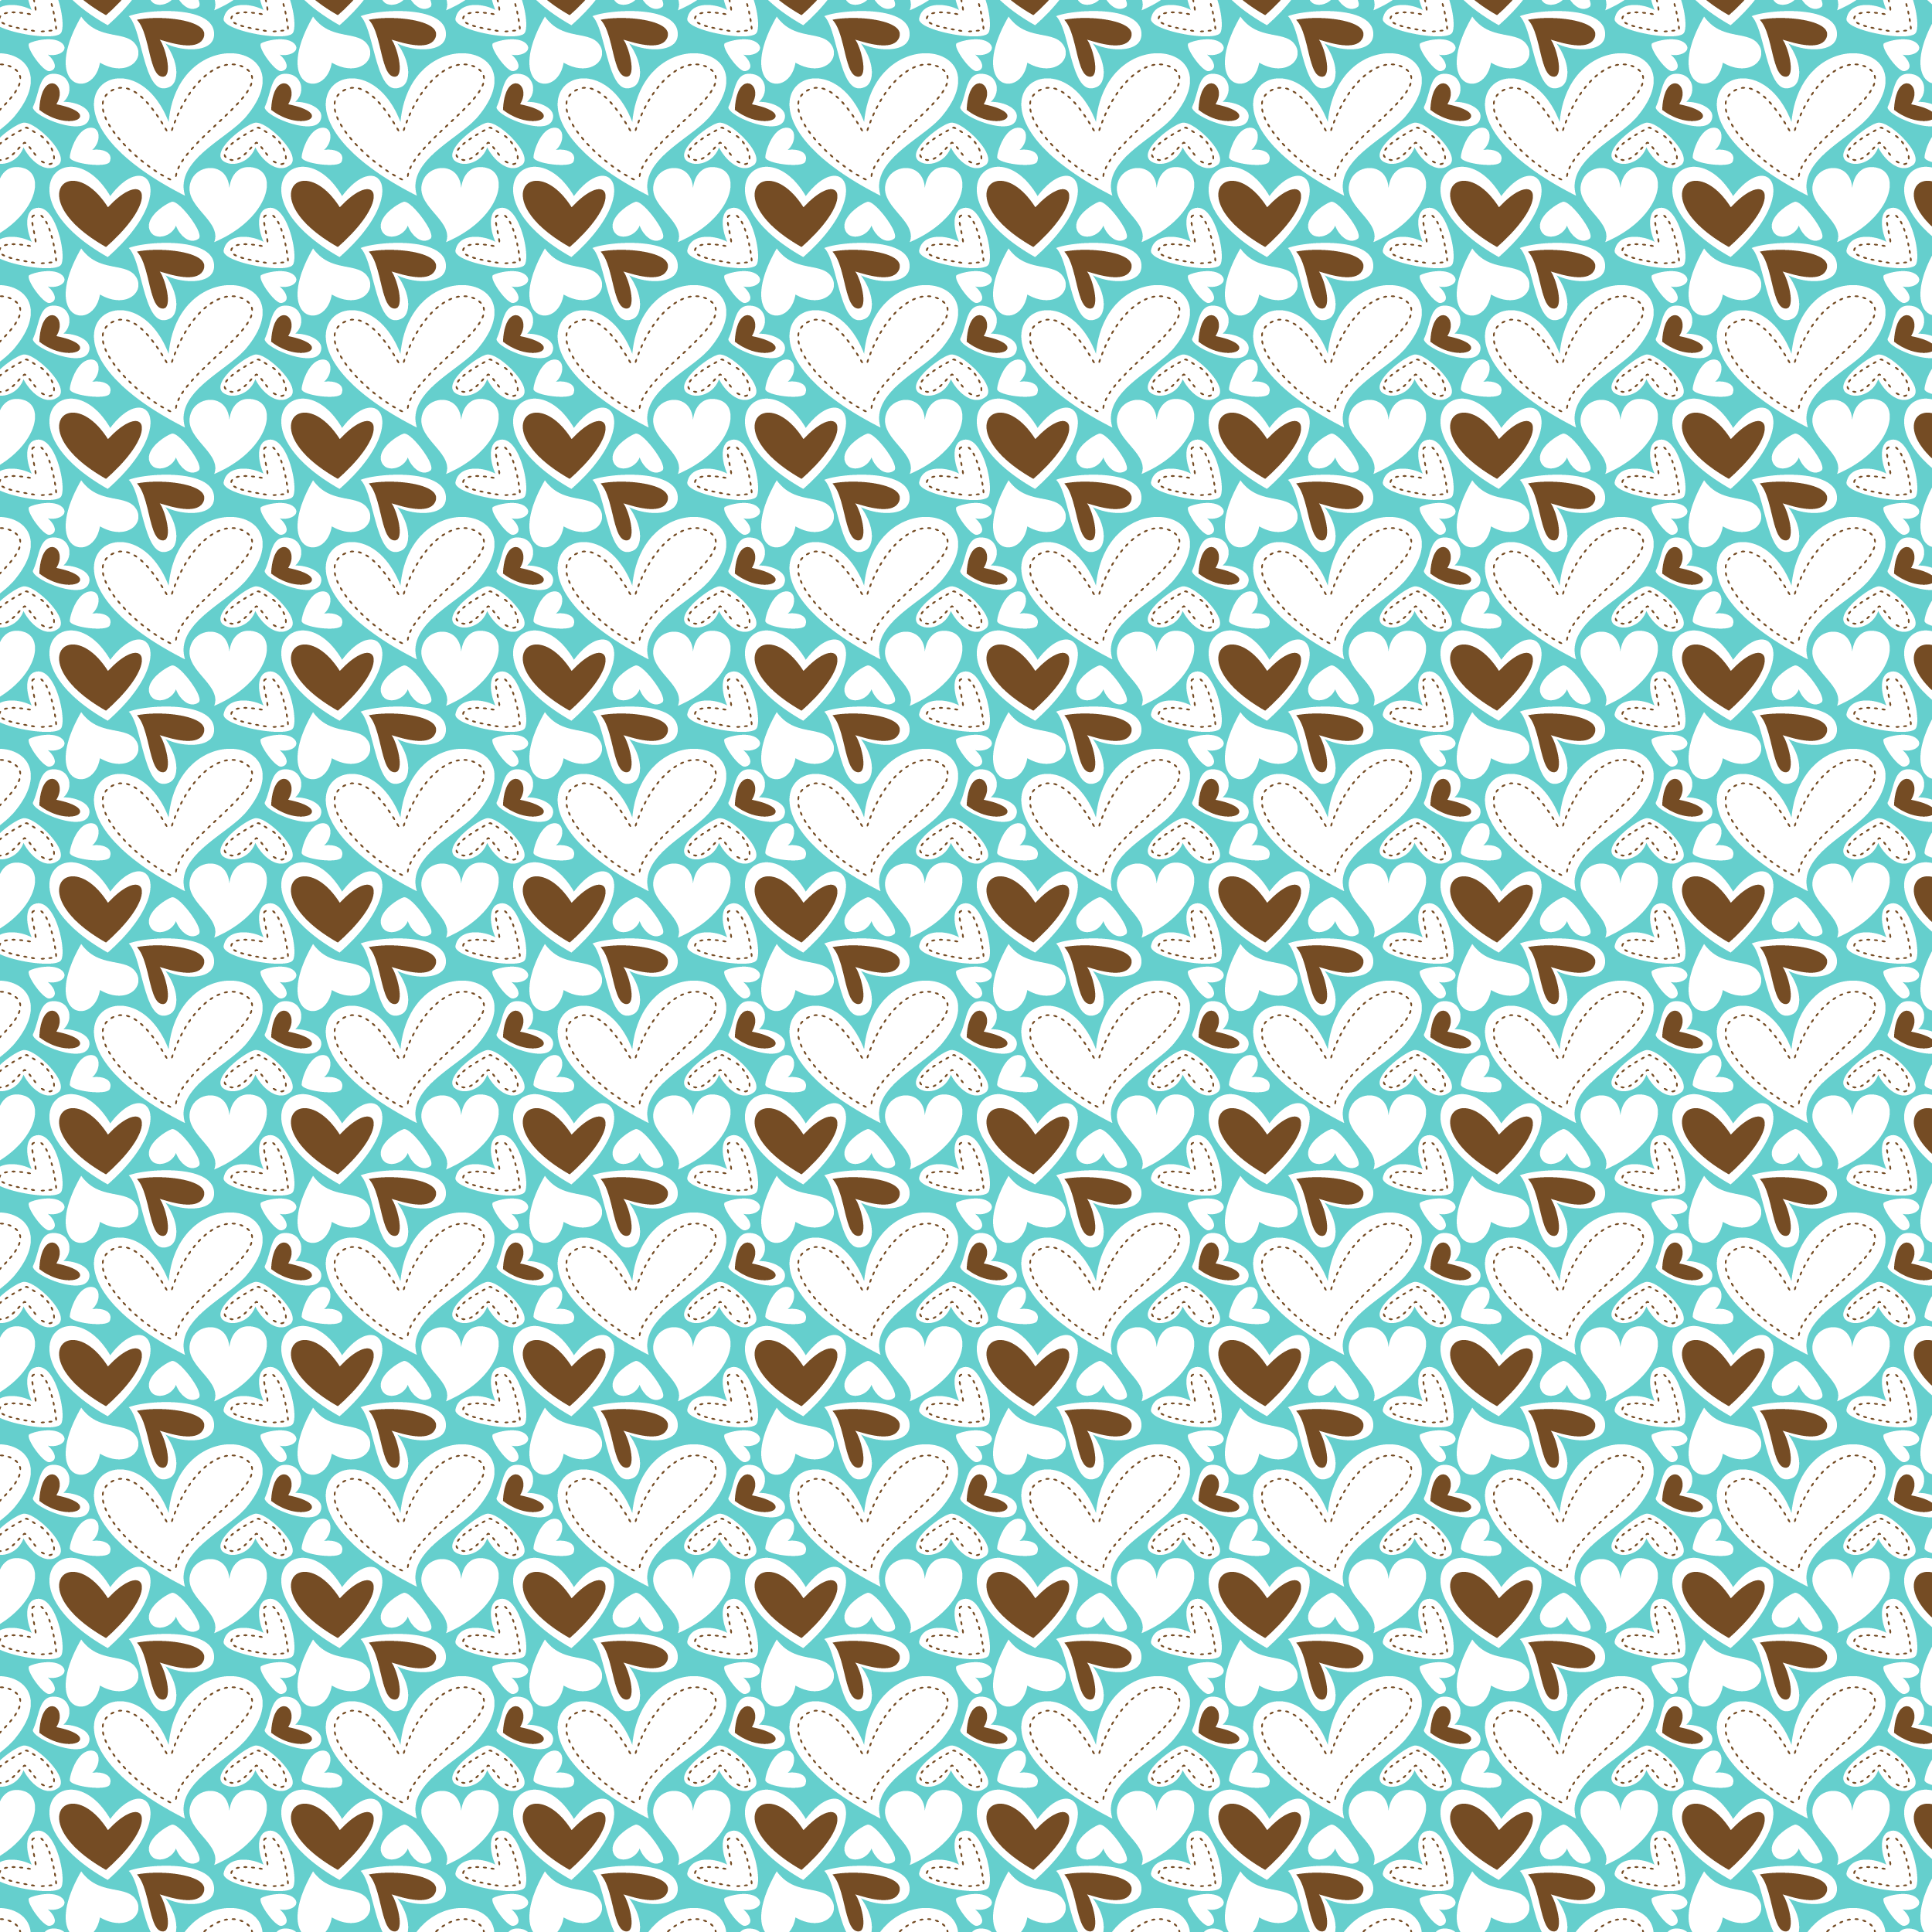 FabNFree-3111-StitchyHearts-TurquoiseBrown-Paper